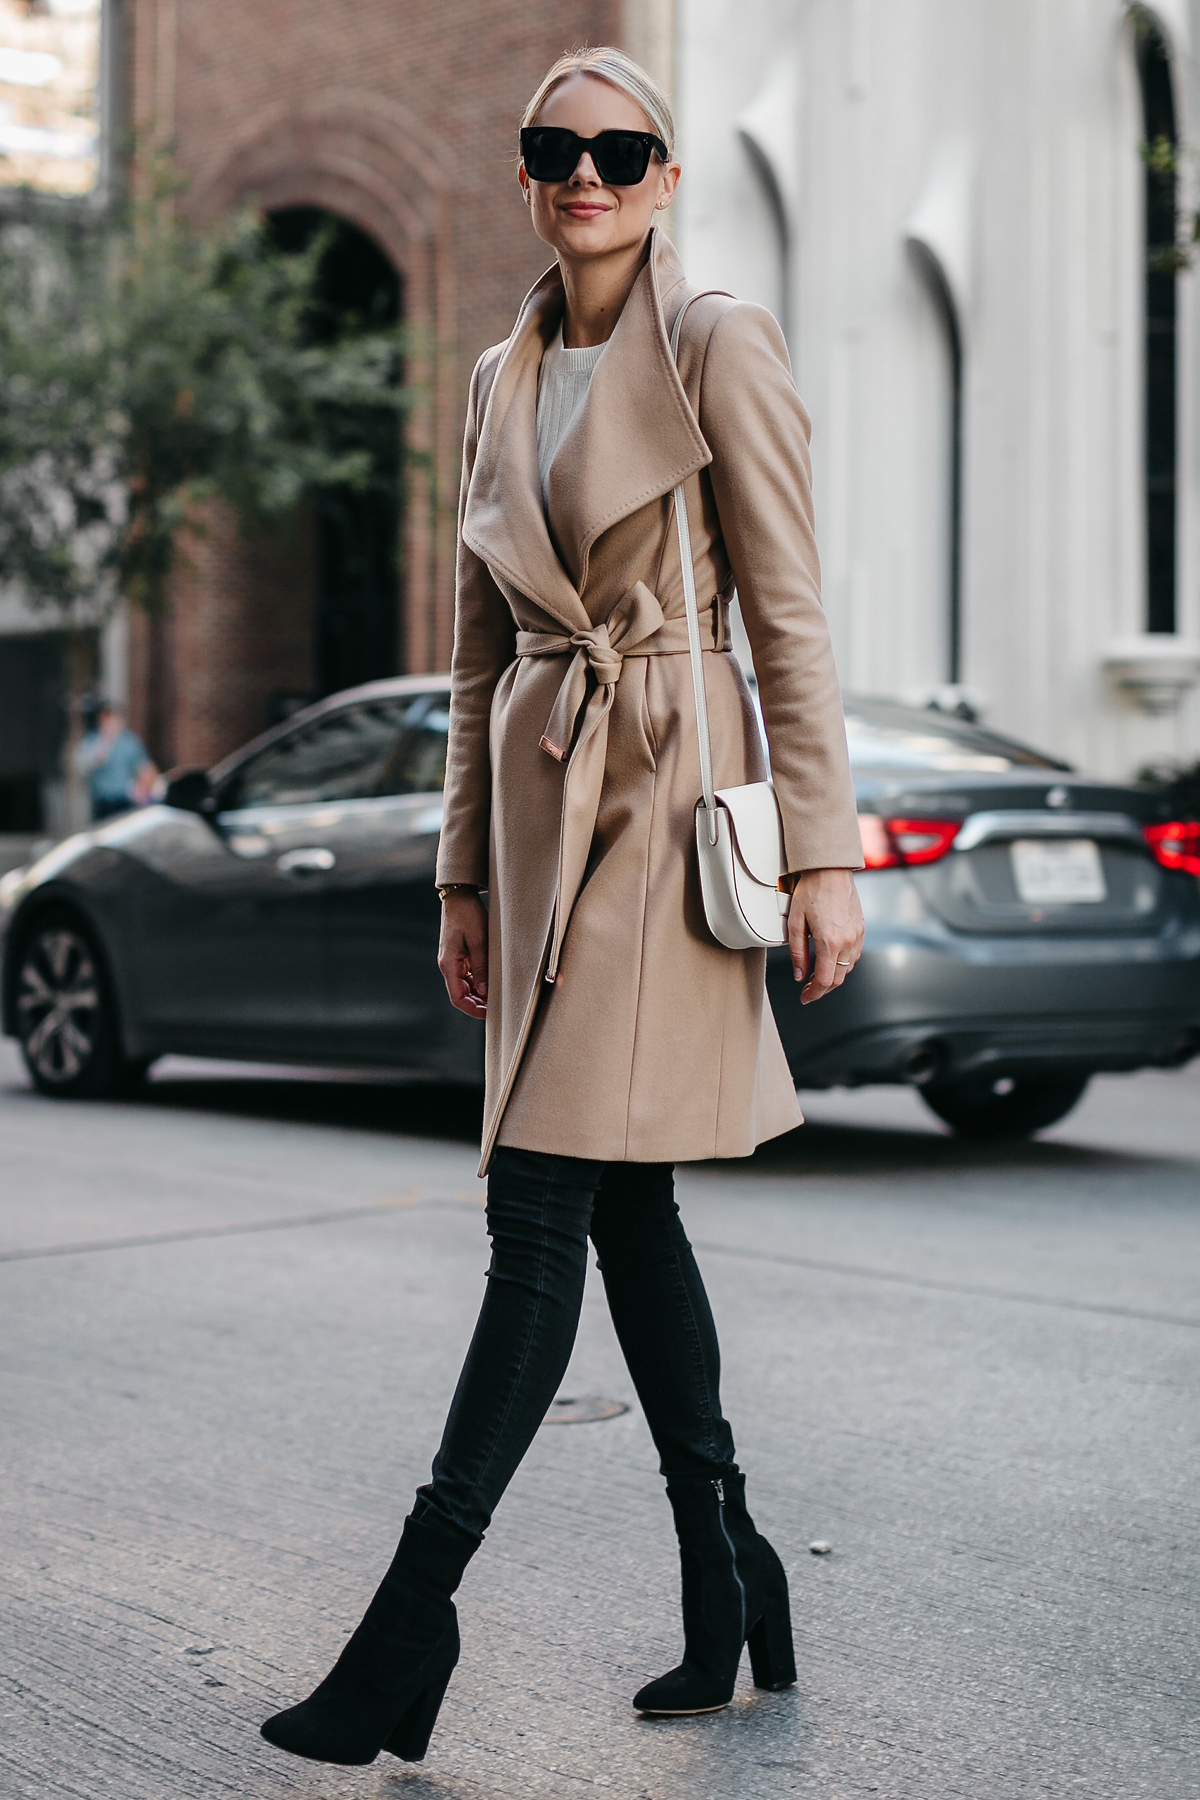 Blonde Woman Wearing Tan Wrap Coat Black Skinny Jeans Black Booties Outfit Fashion Jackson Dallas Blogger Fashion Blogger Street Style